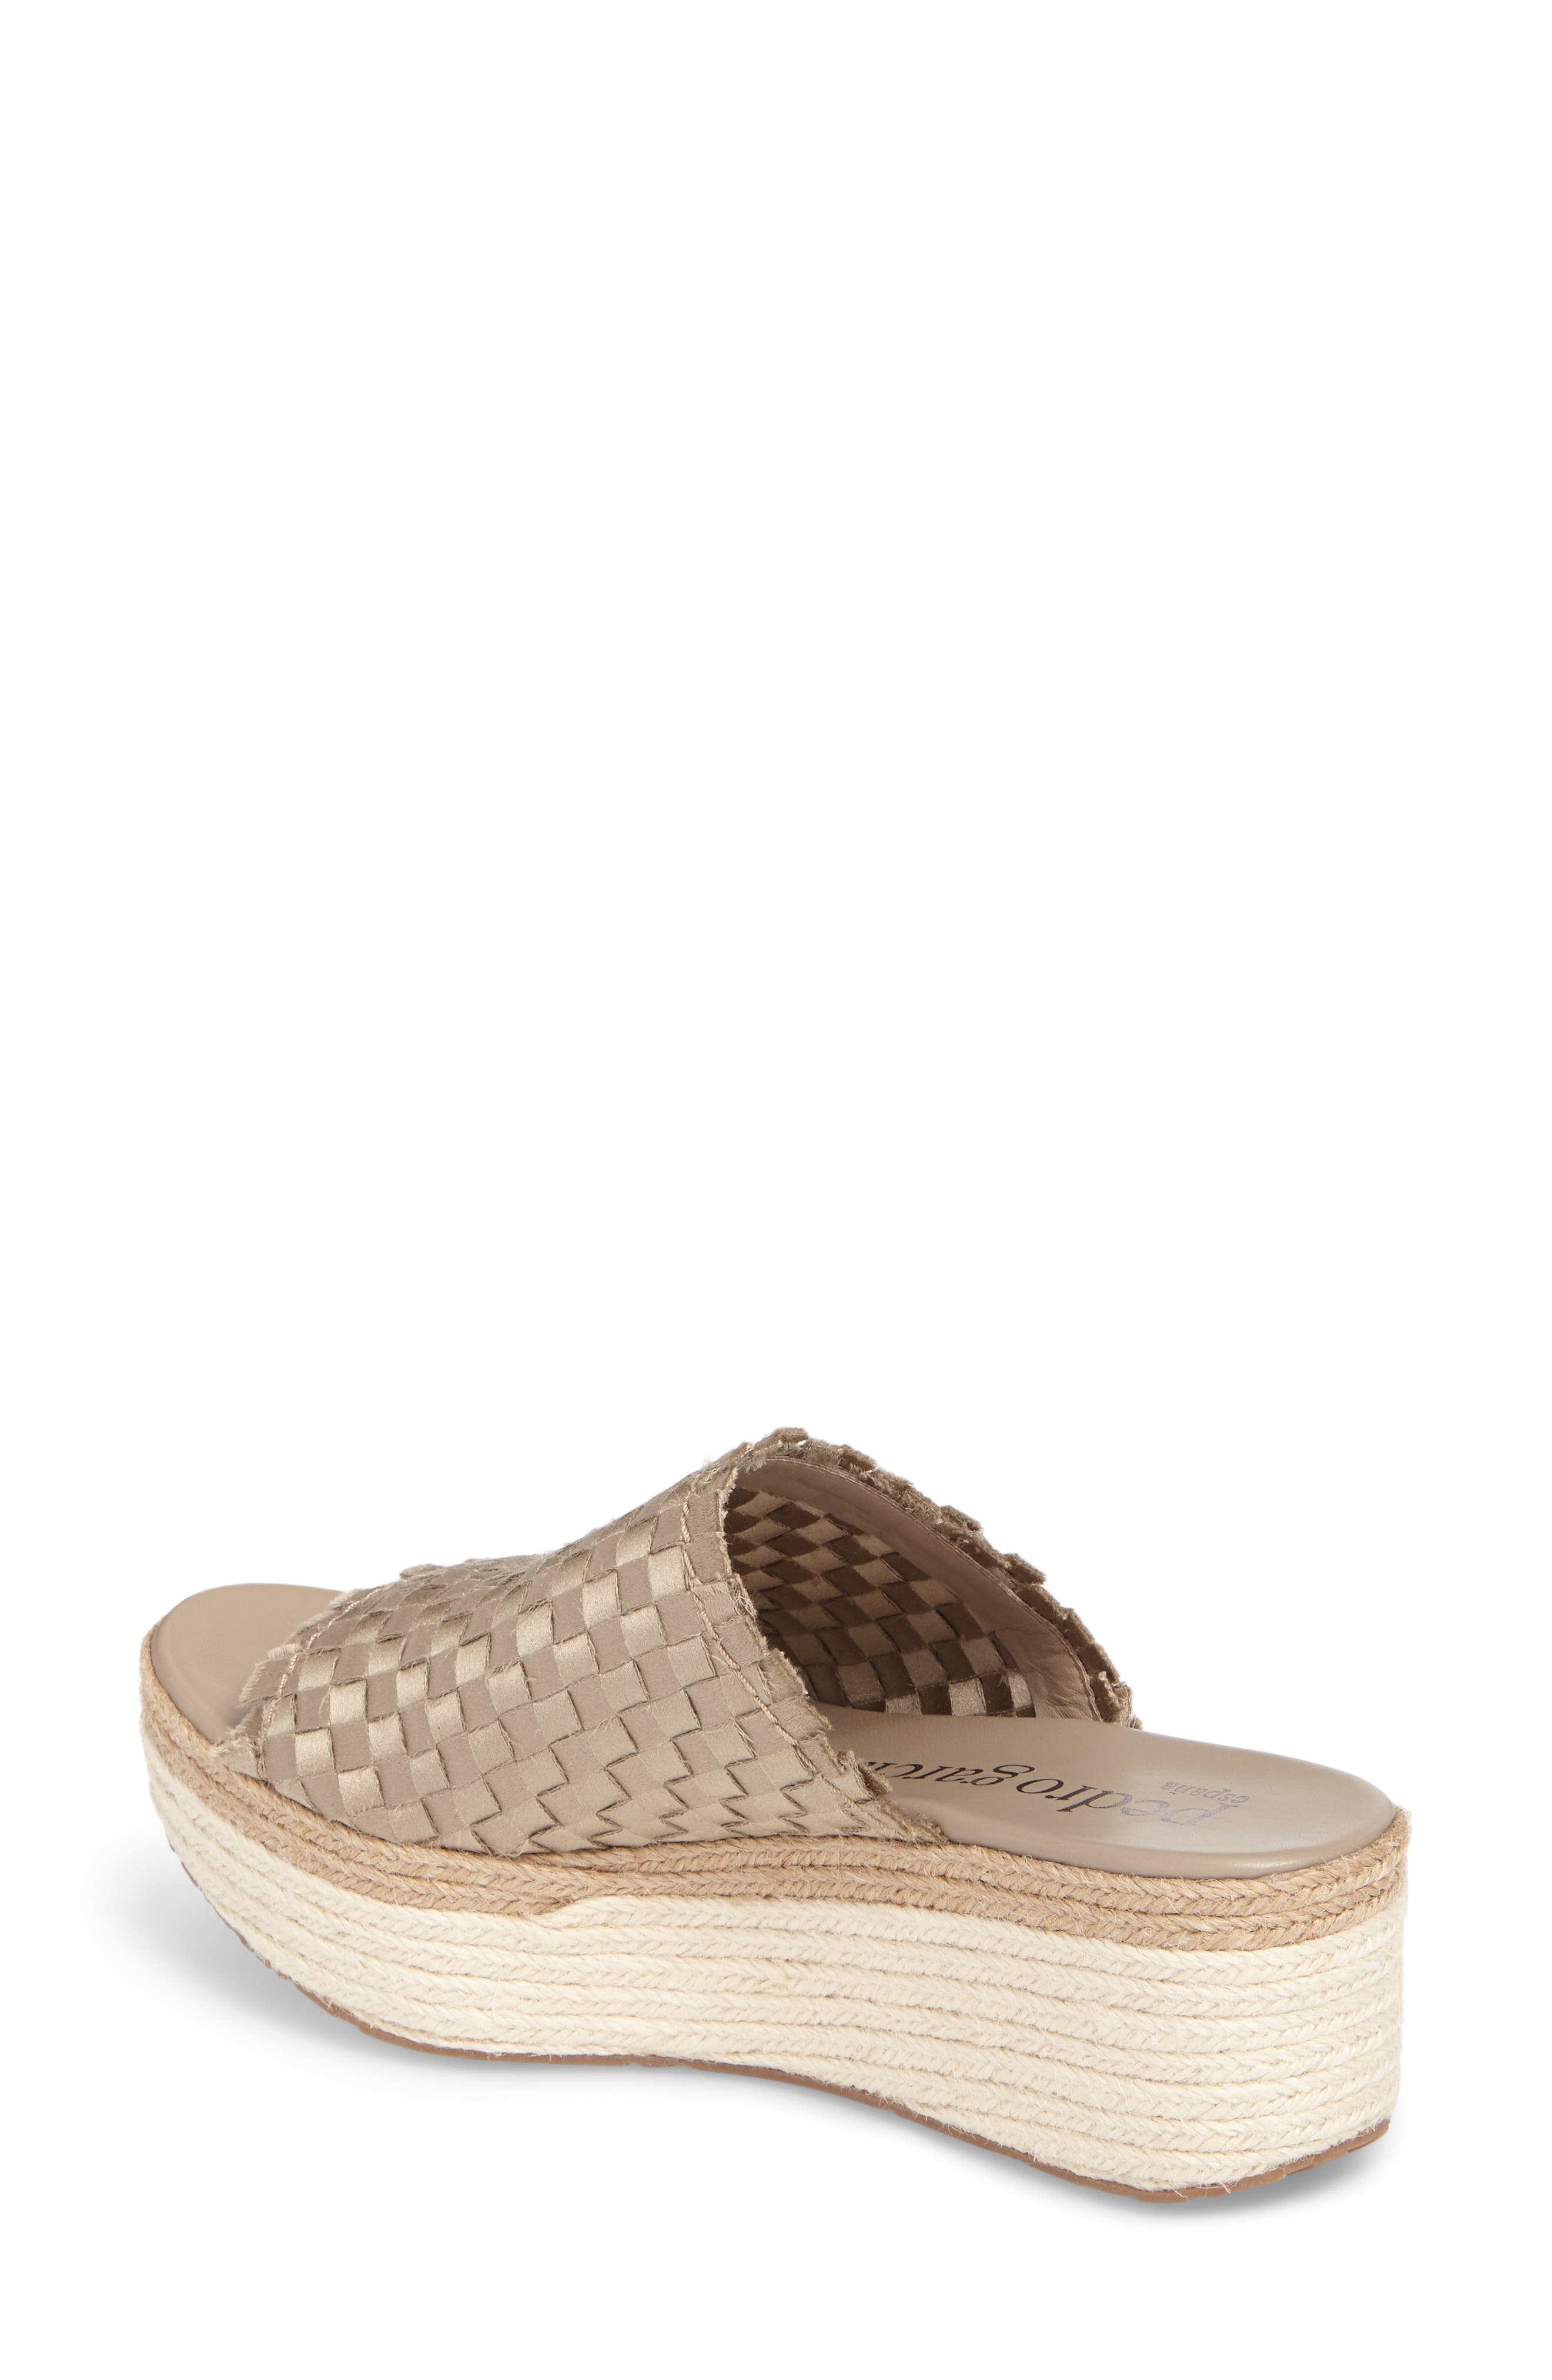 Noema Woven Espadrille Mule,                             Alternate thumbnail 2, color,                             Twill Satin